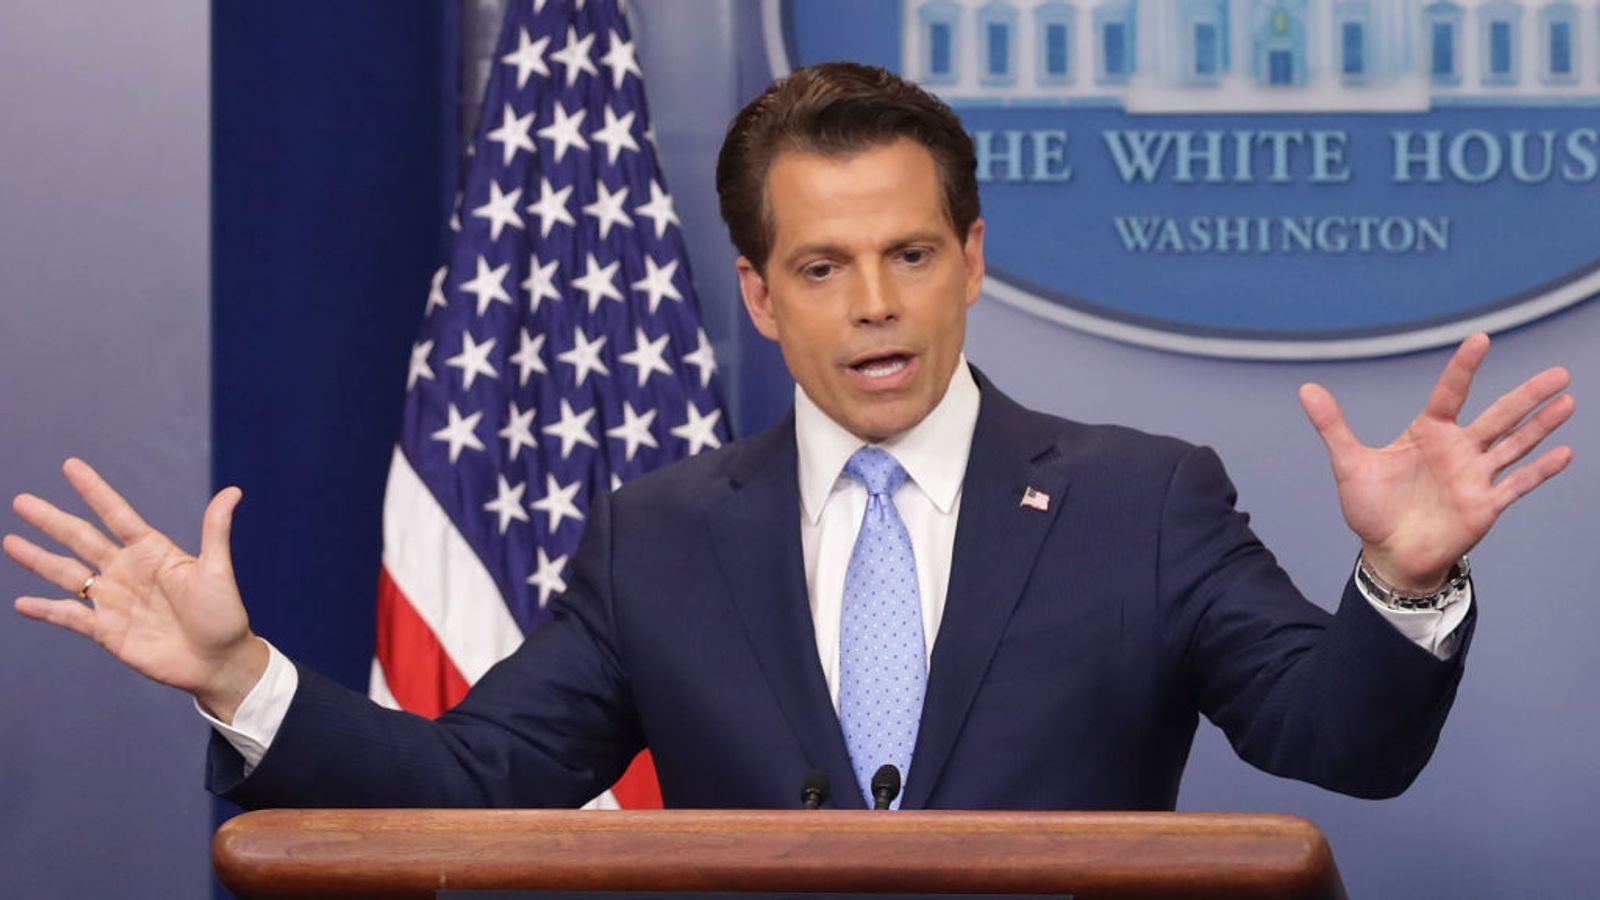 The Meteoric Rise and Fall of Anthony Scaramucci